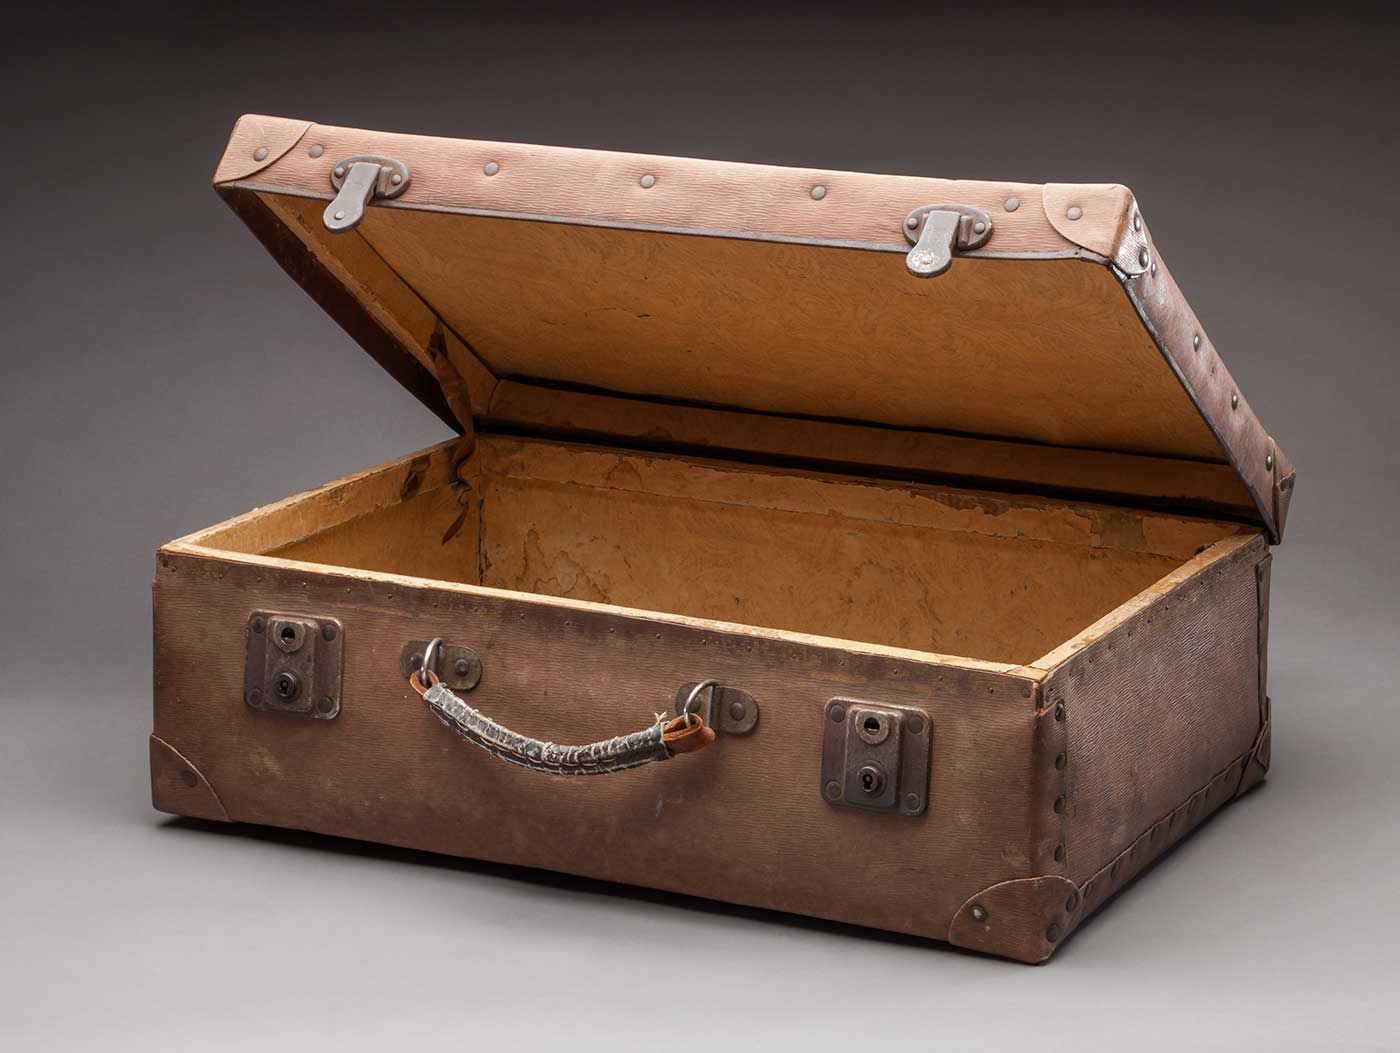 Colour photograph of a brown vinyl suitcase with the lid partially open. It has reinforced corners, a worn handle and two metal clasps at the front. - click to view larger image